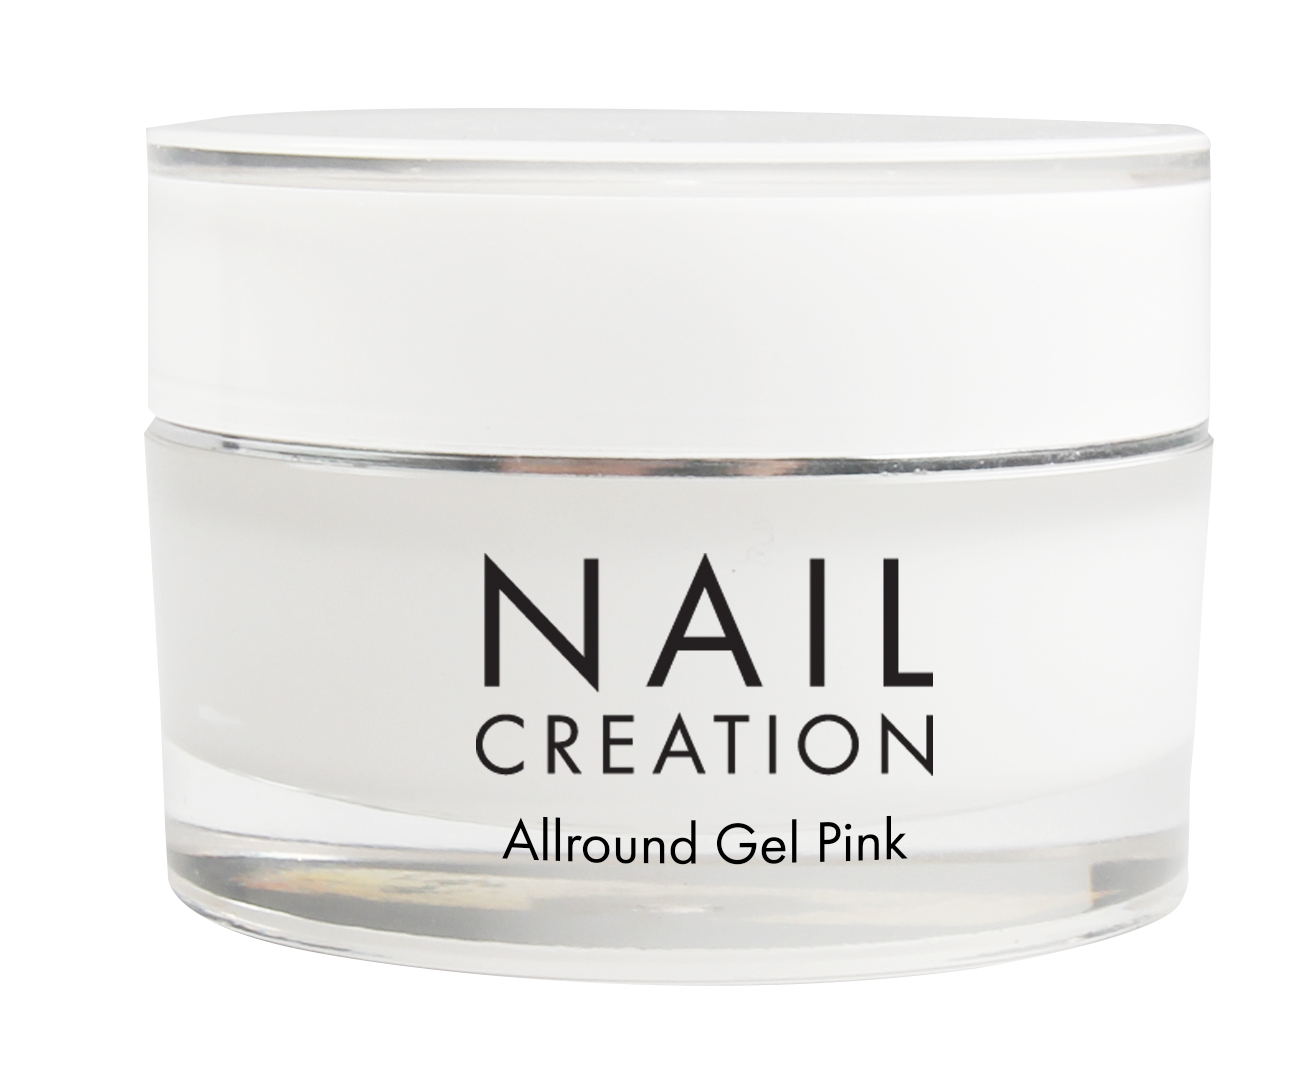 Afbeelding van Nail Creation Allround Gel - Pink 30 ml